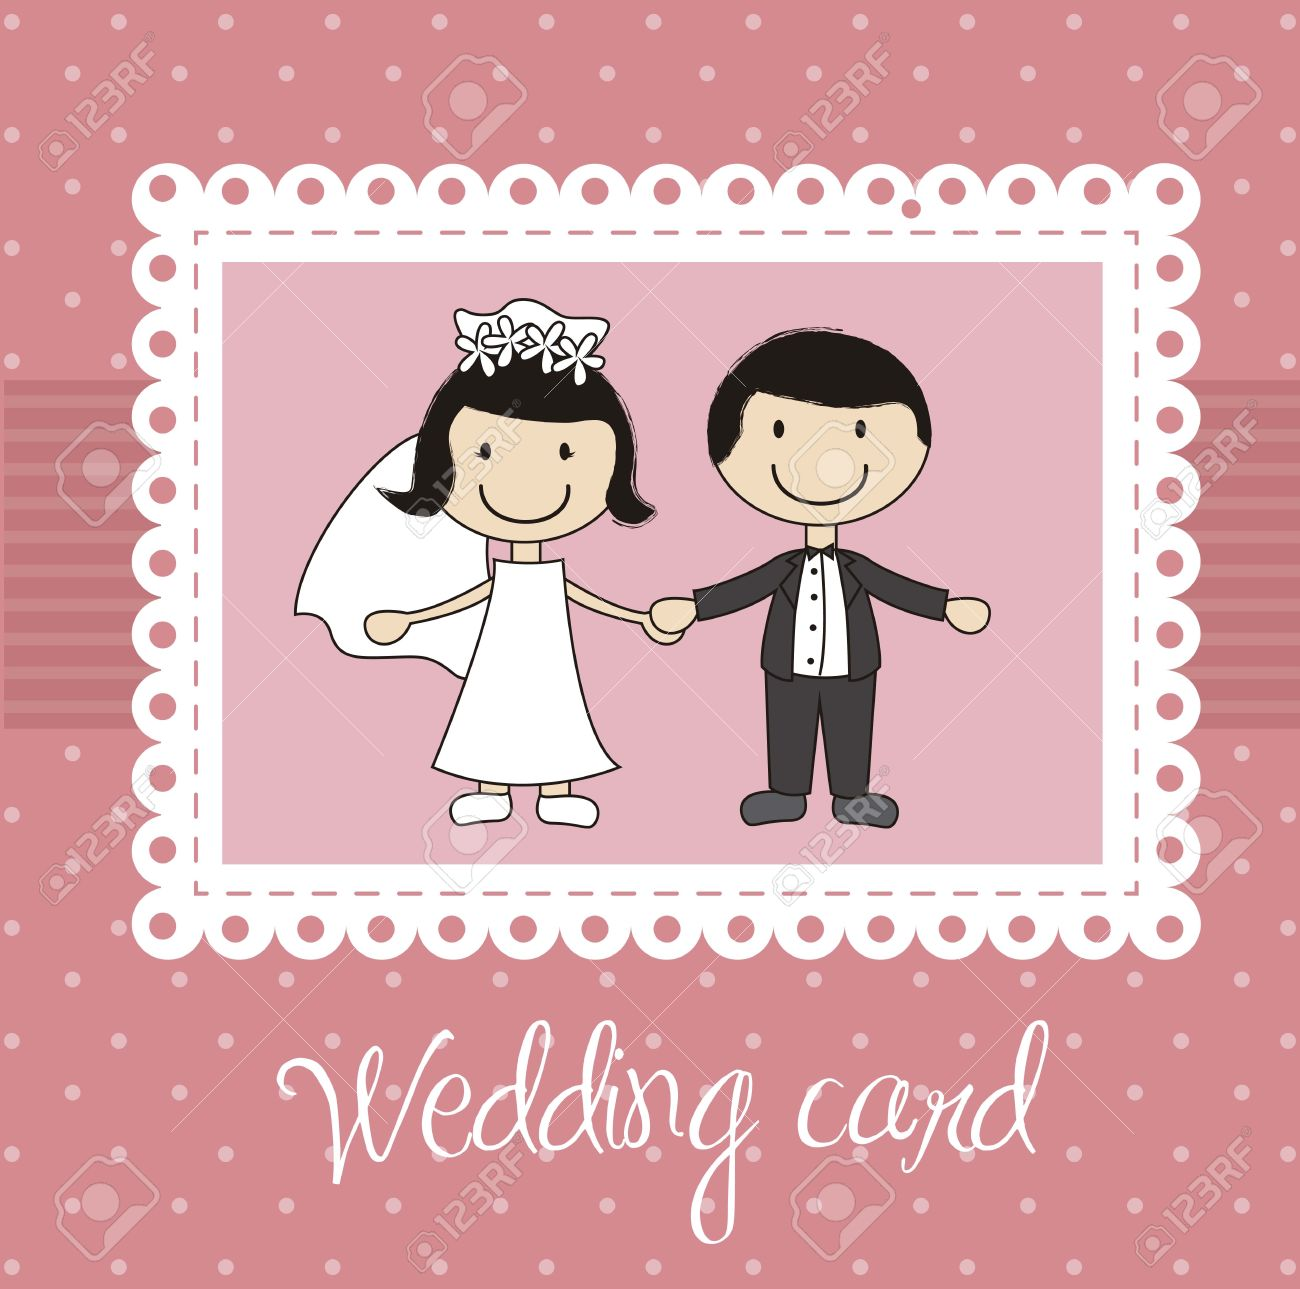 Pink Wedding Card With Cute Couple Royalty Free Cliparts Vectors